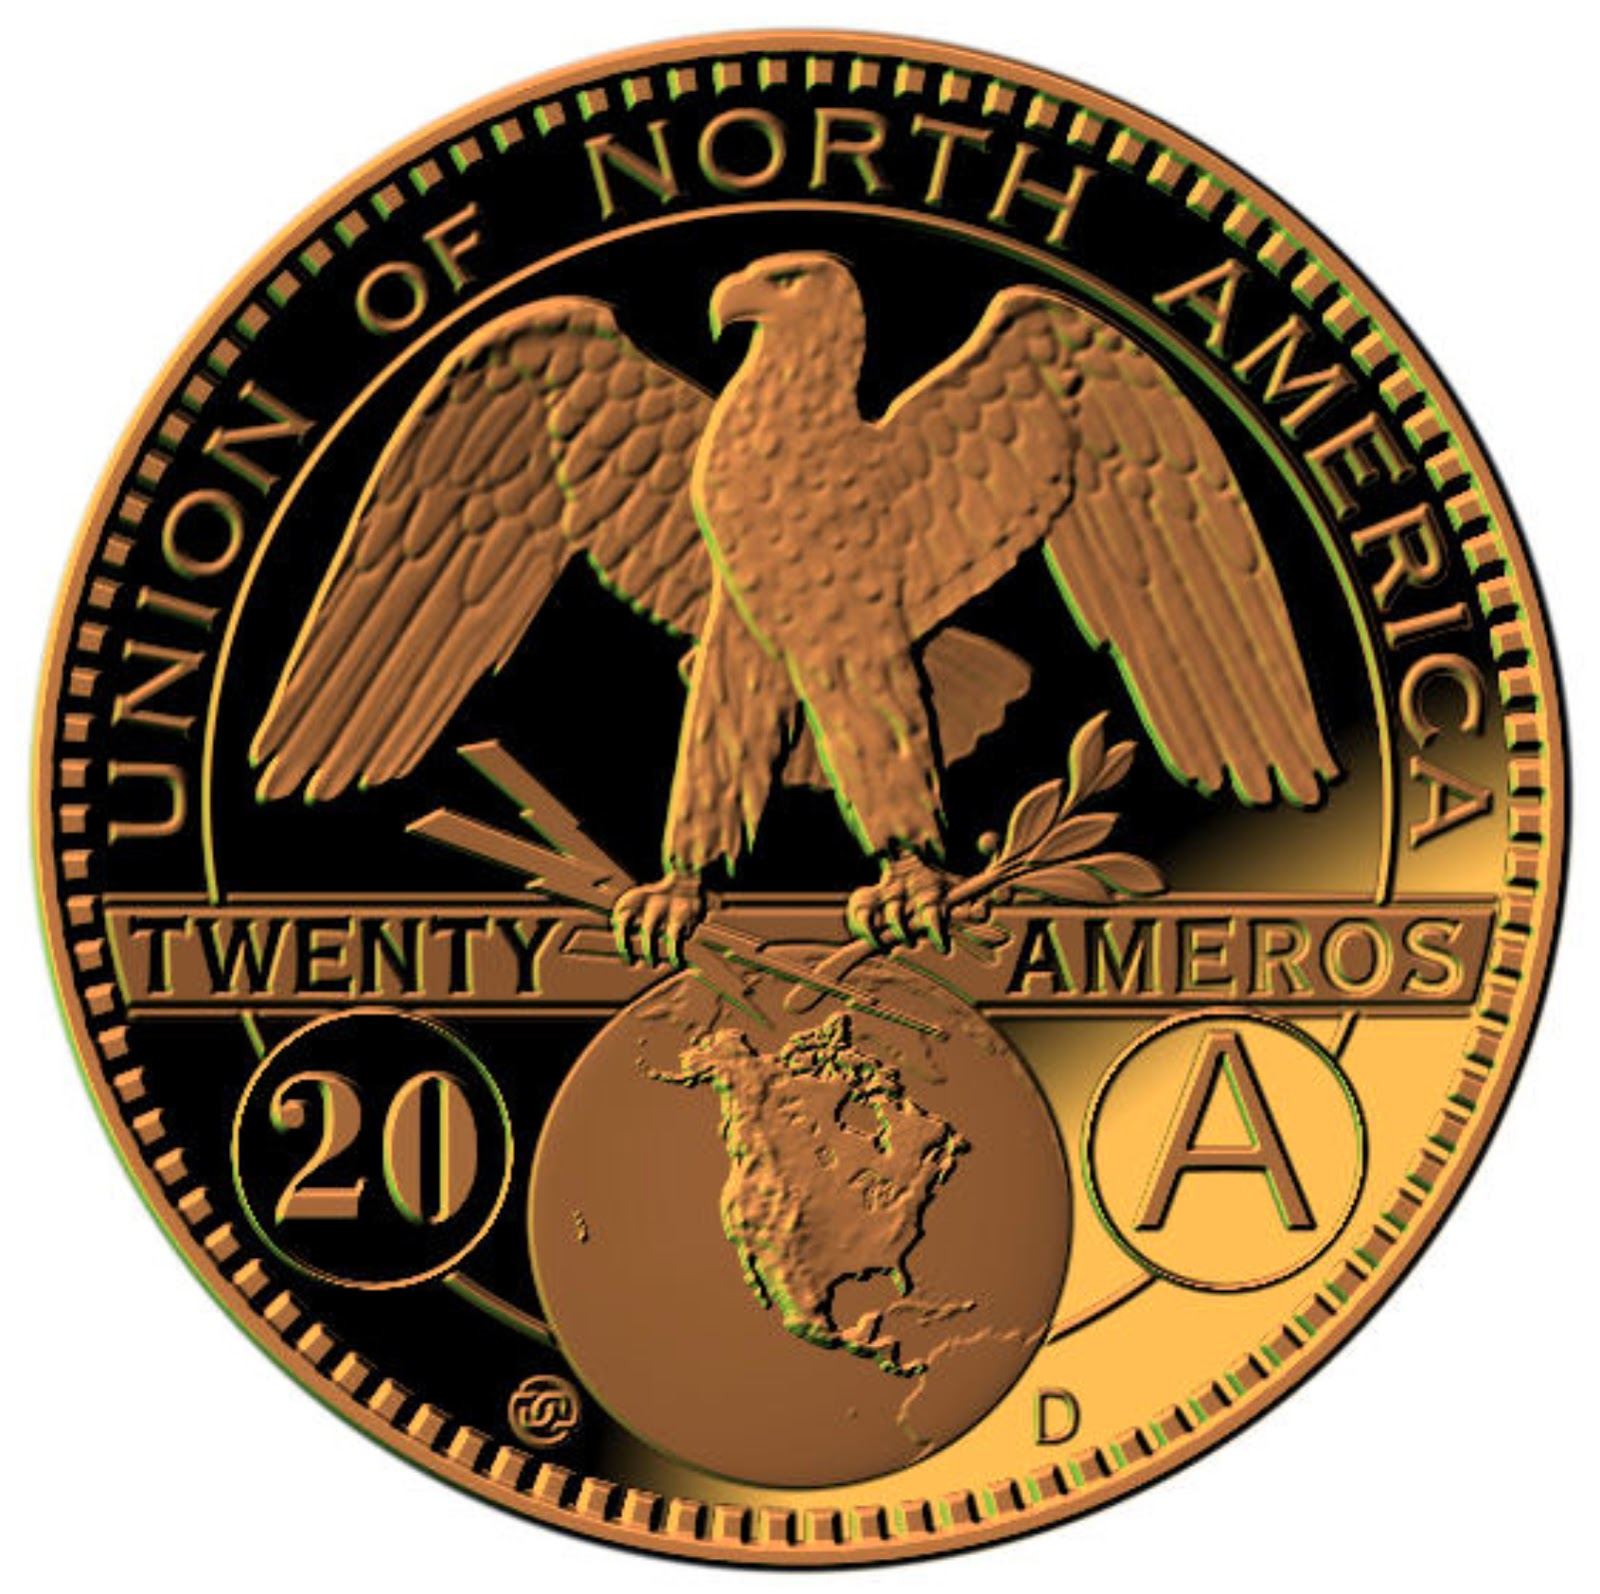 Images of the new US Amero currency minted at Denver  Amero%2Bcoin%2B1.%2B%231ab